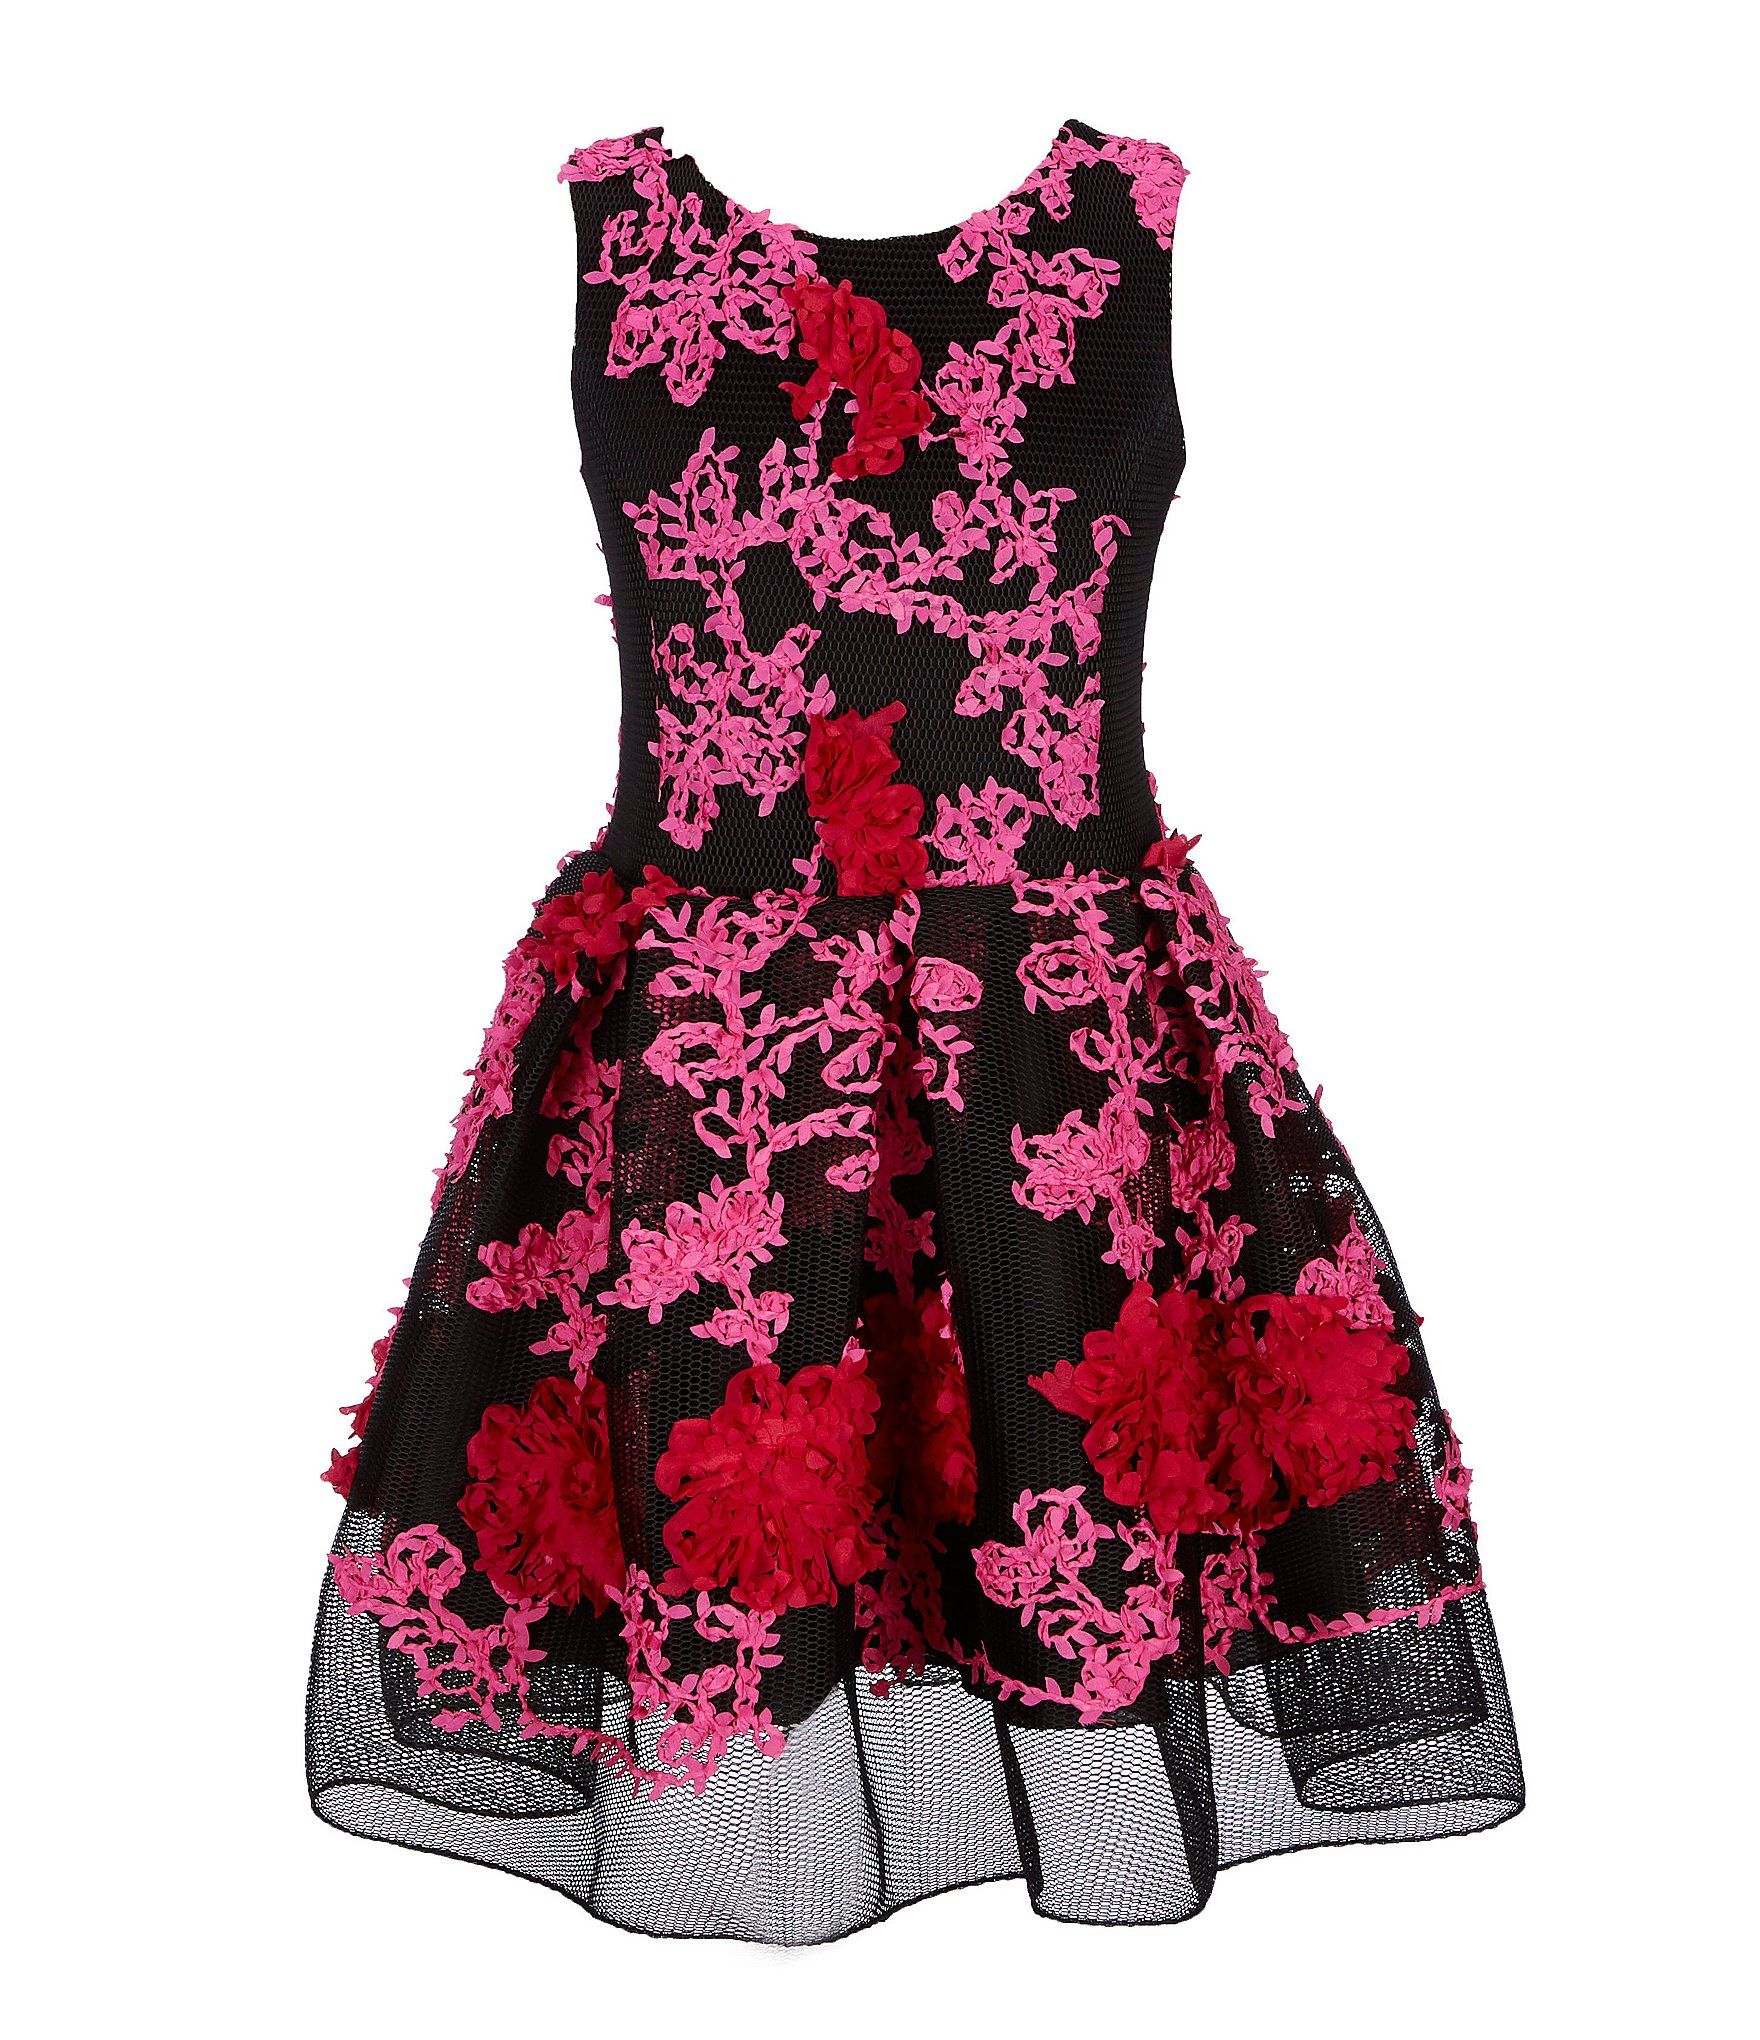 c5e4e554550 Shop for Zoe Big Girls 7-16 Floral Embroidered Mesh Fit-And-Flare Dress at  Dillards.com. Visit Dillards.com to find clothing